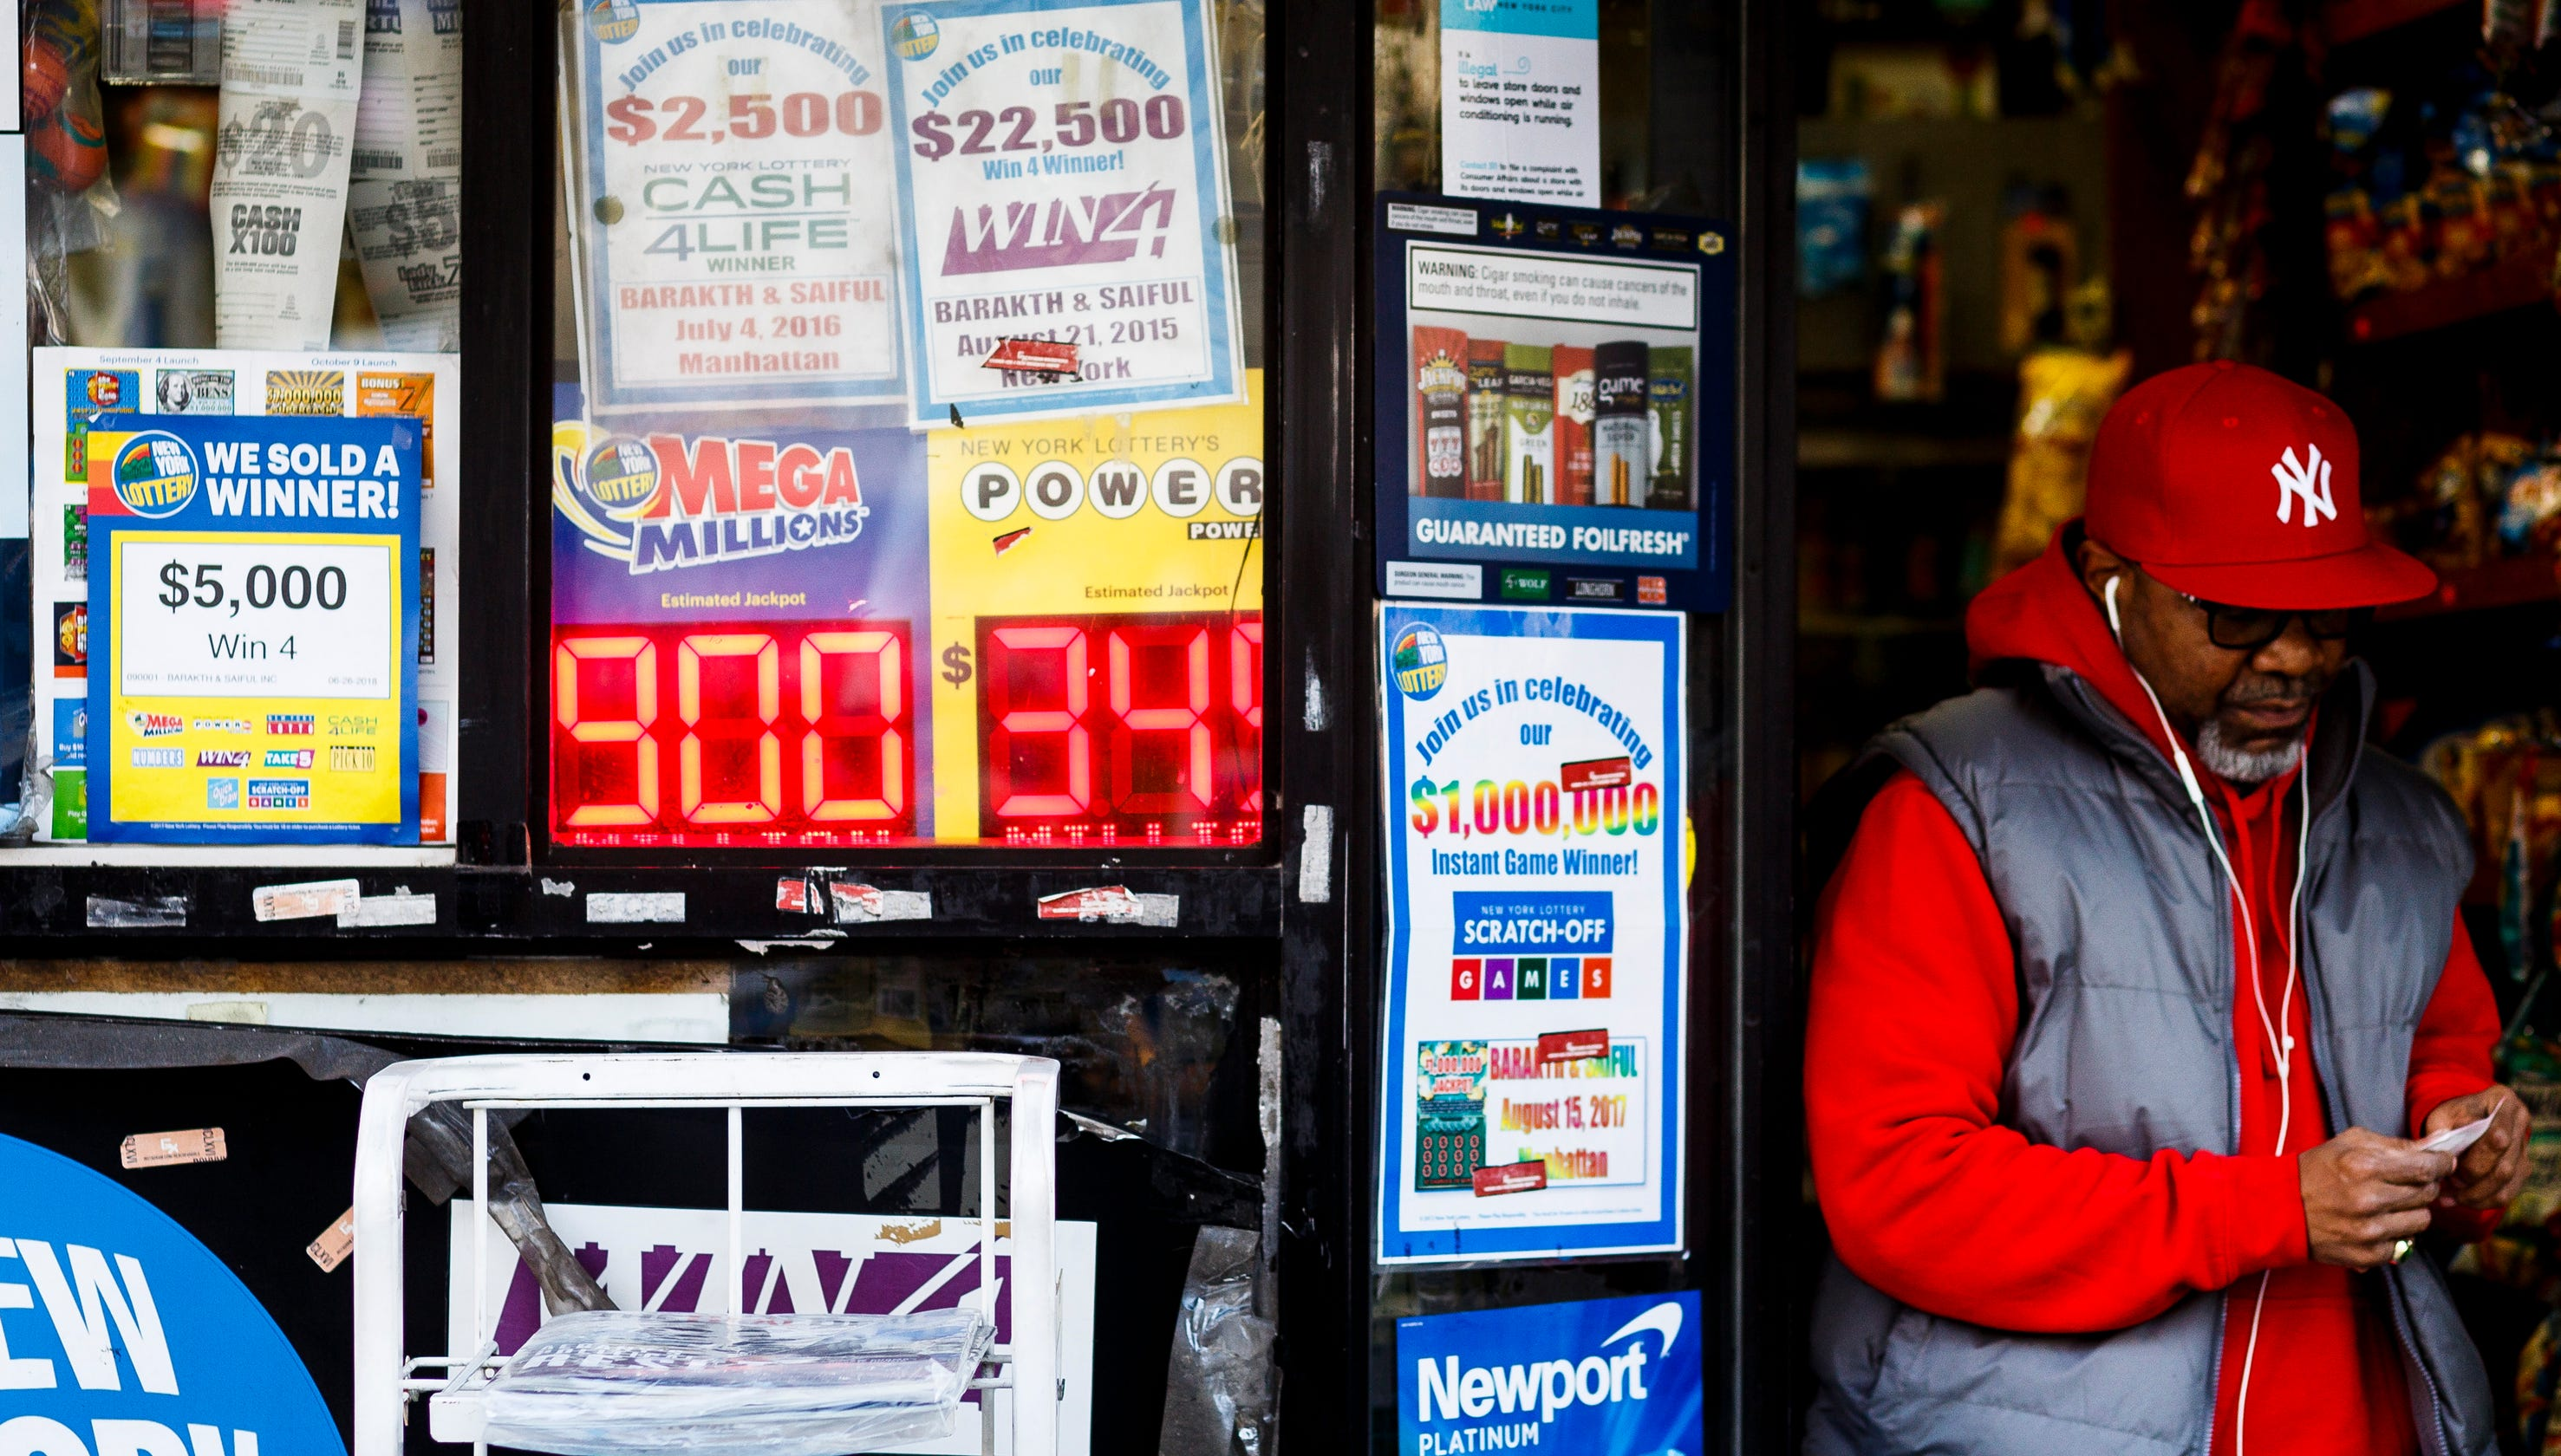 Mega Millions results: What time? Odds of winning $1 billion